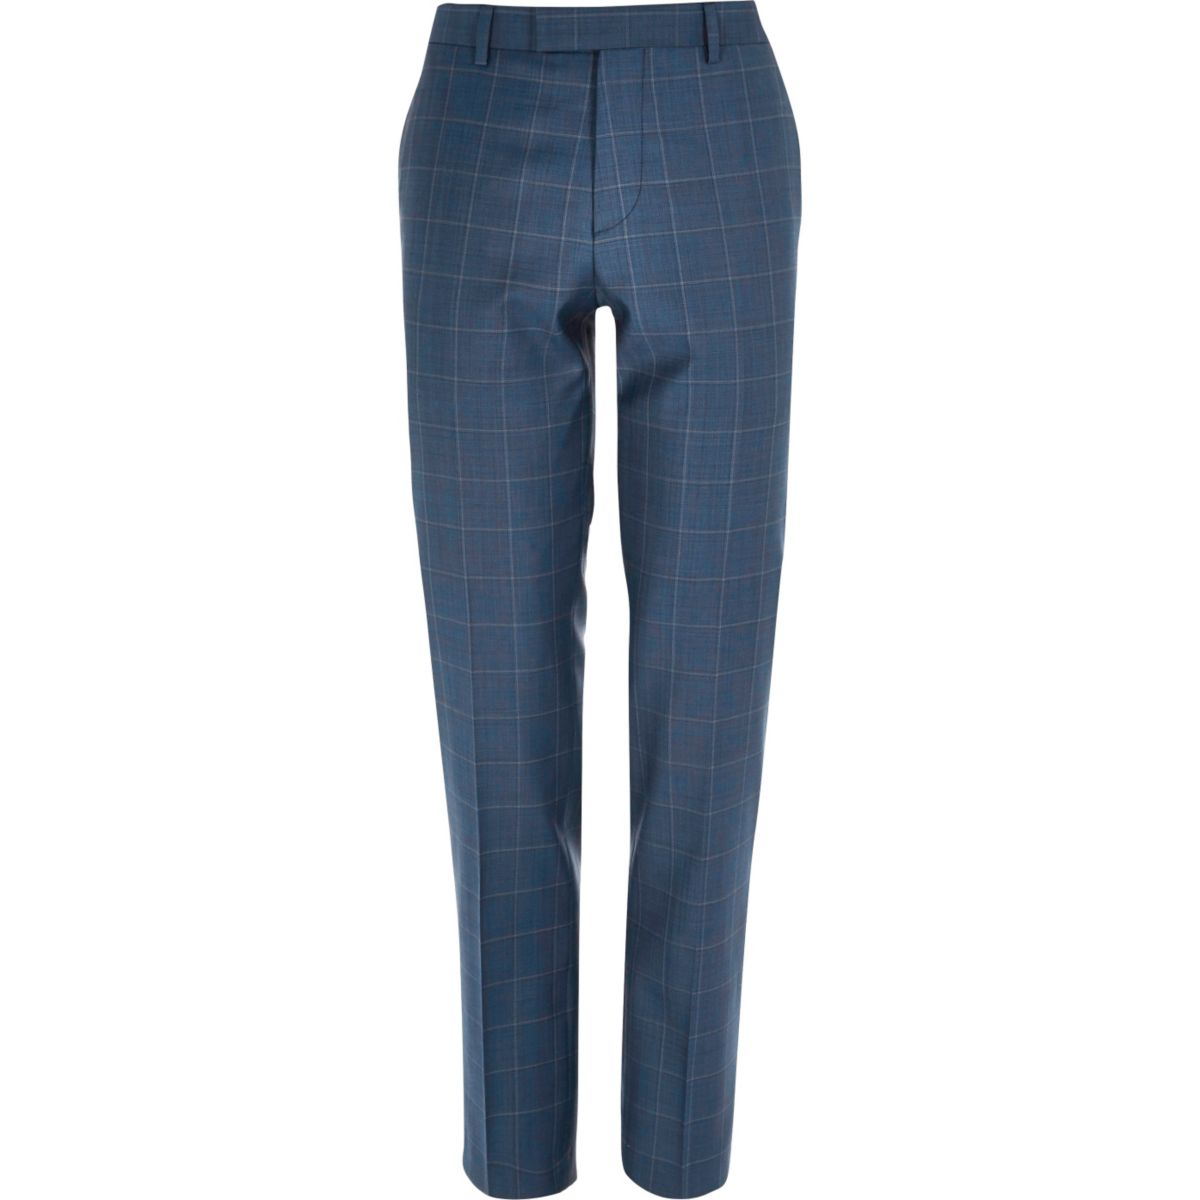 Pantalon de costume slim bleu à carreaux